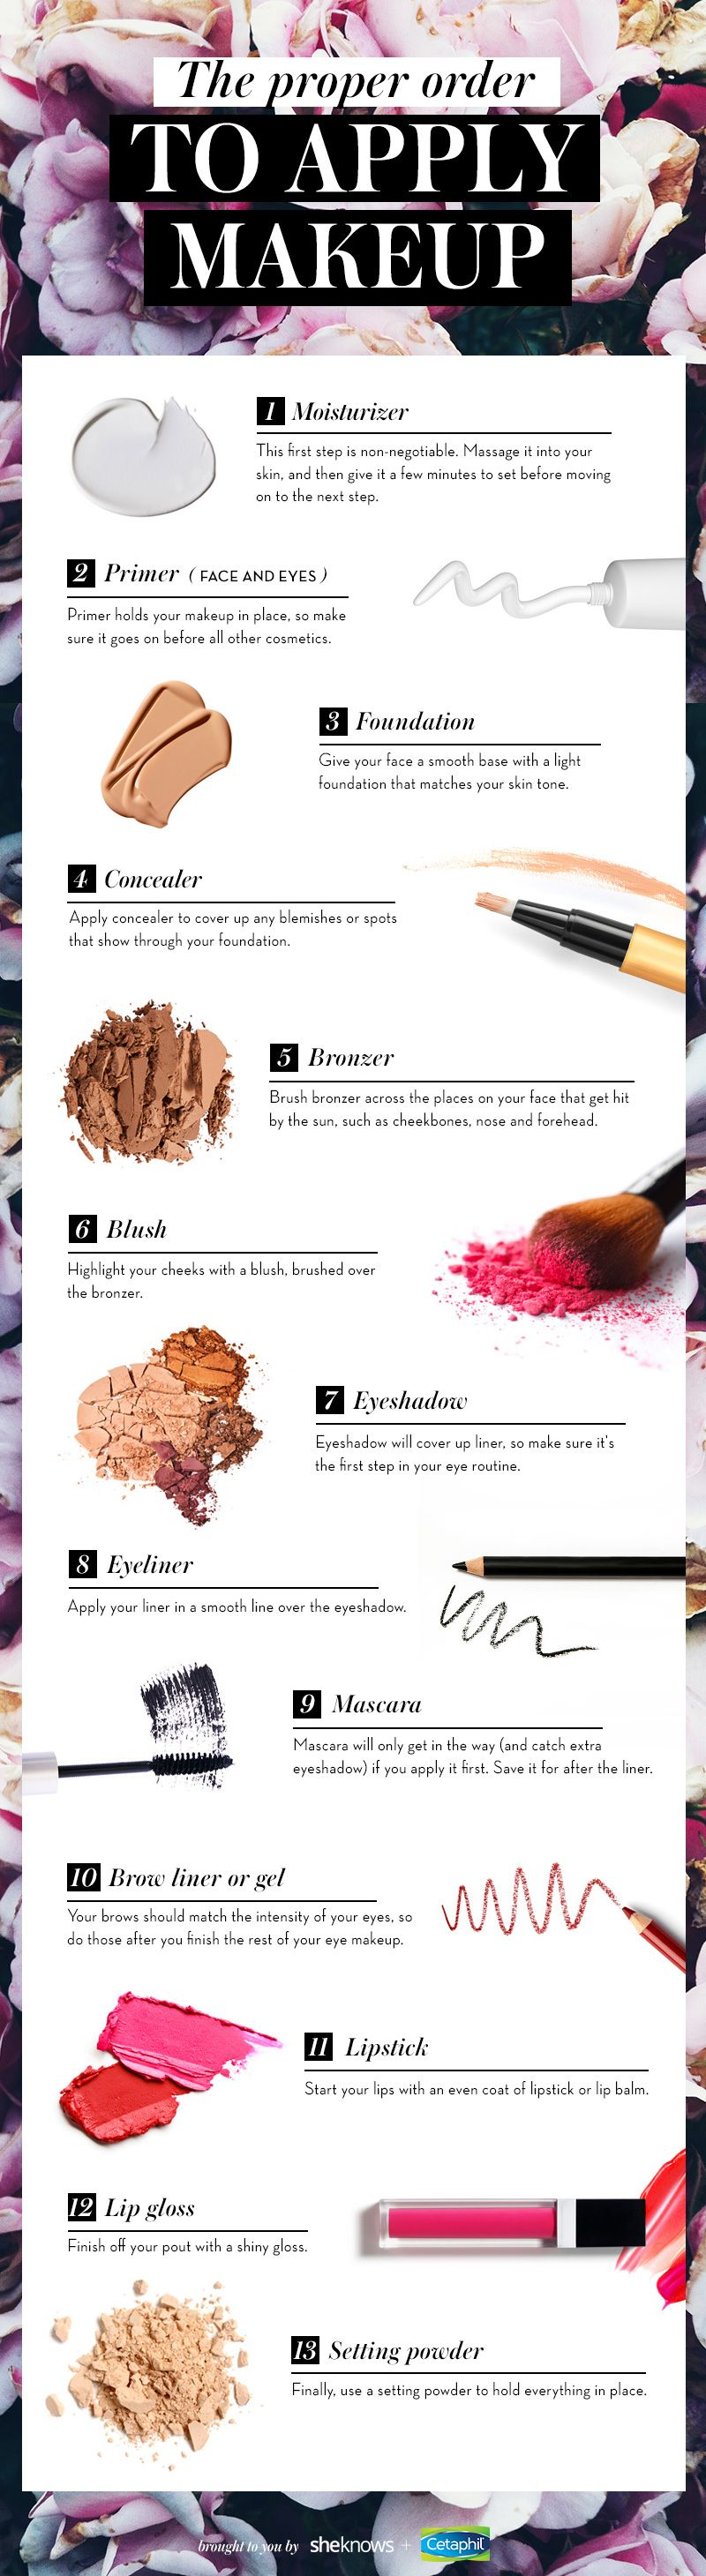 Have you been putting your makeup on in the wrong order